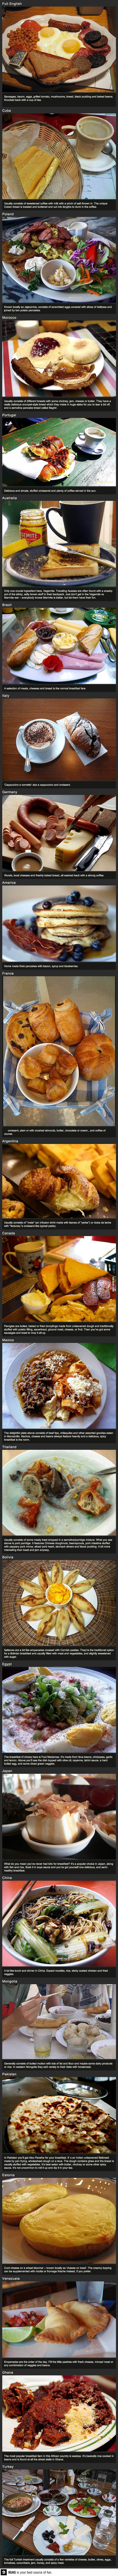 Breakfasts around the world. Are they accurate?